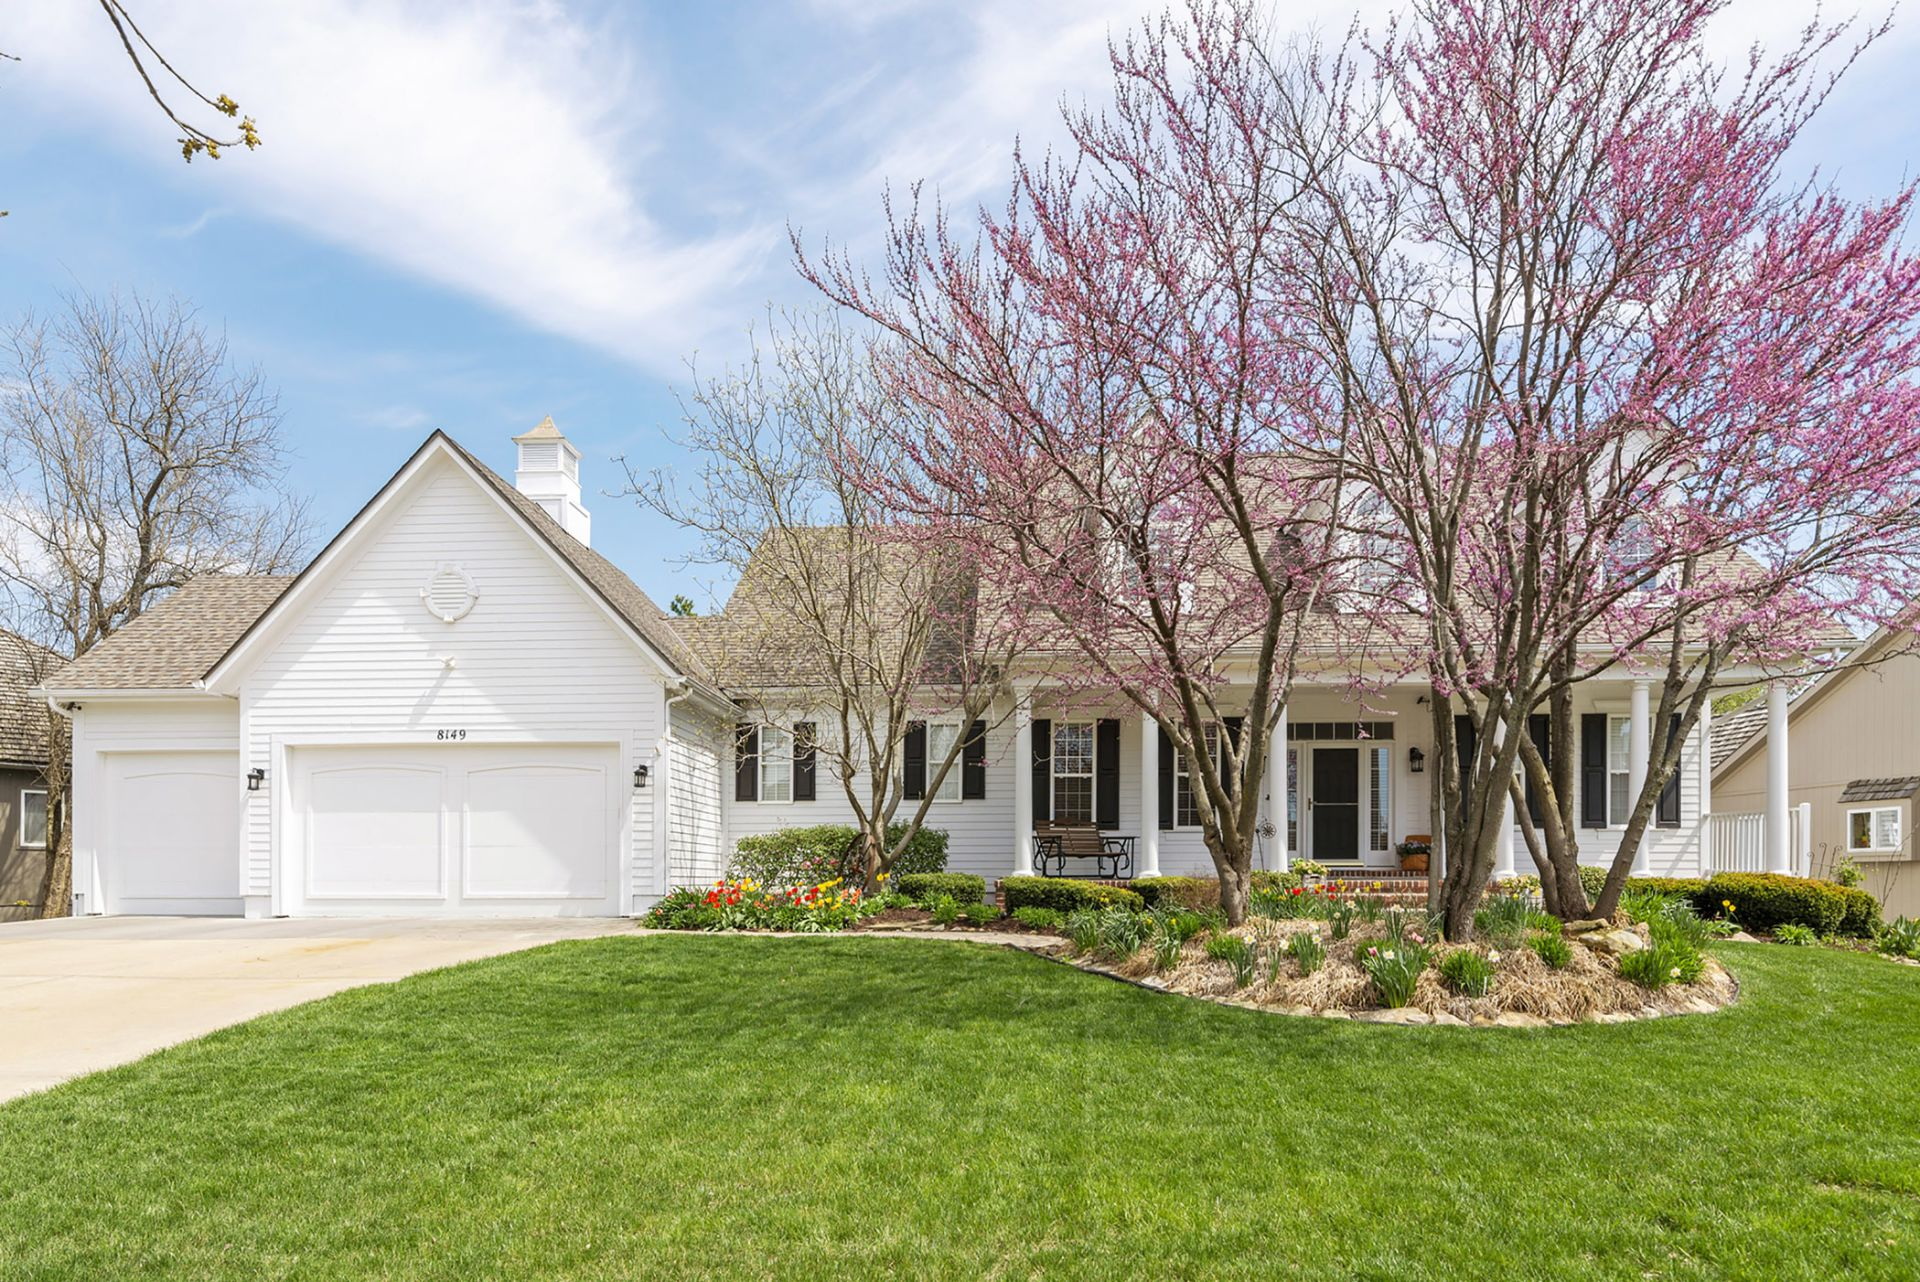 JUST LISTED & OPEN HOUSE! Gorgeous 5BR Colonial Home on Beautiful Treed Lot!